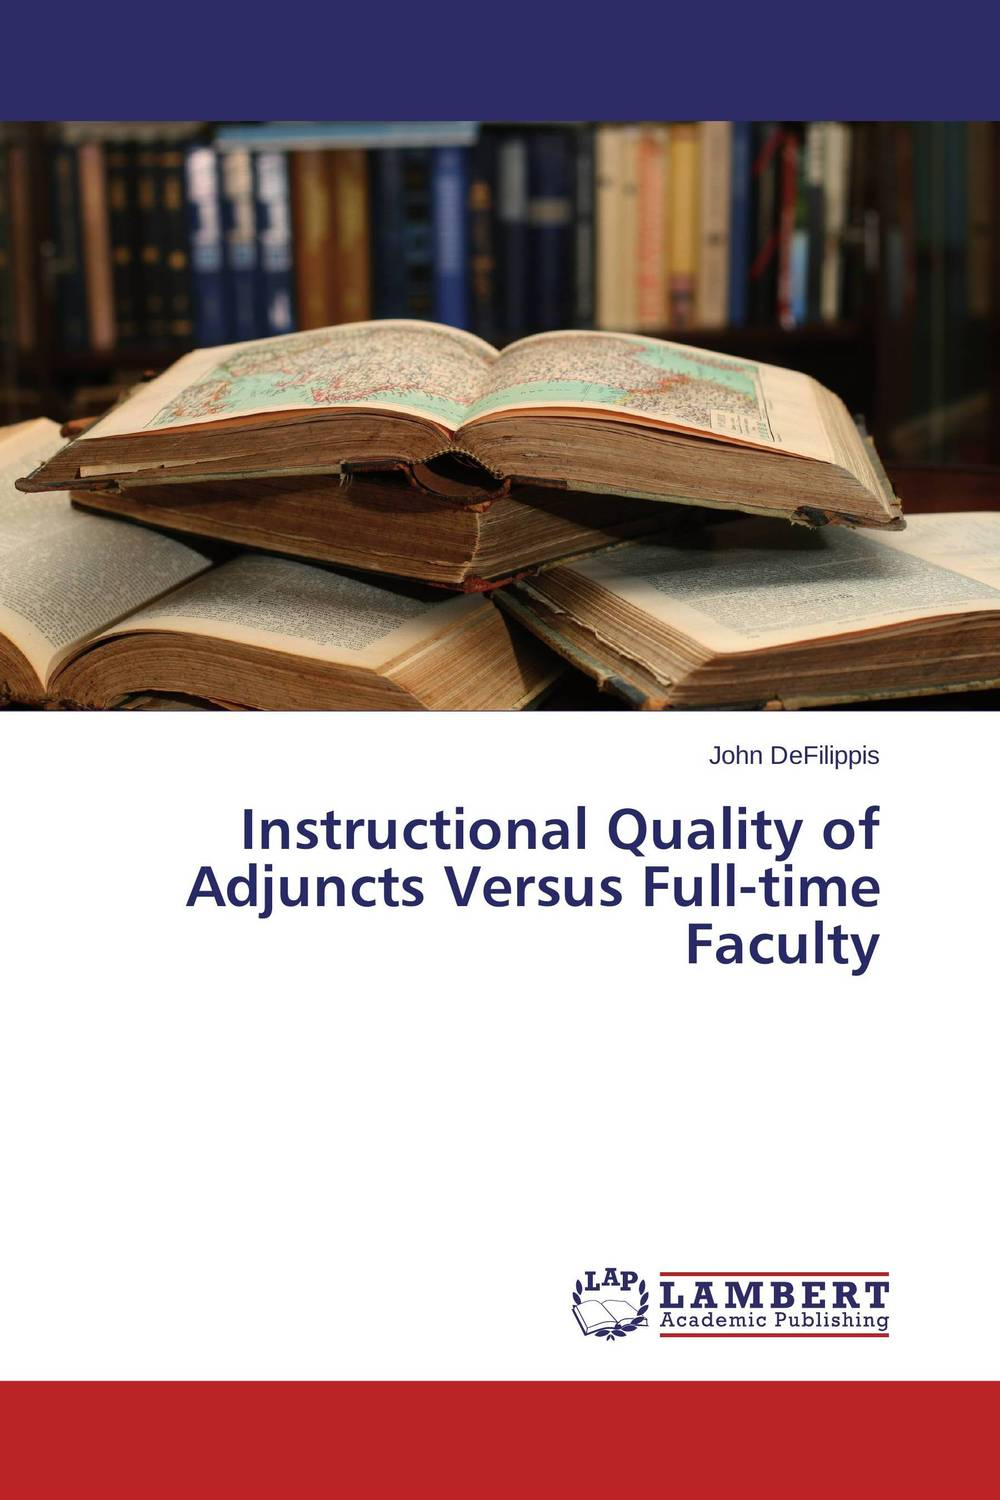 Instructional Quality of Adjuncts Versus Full-time Faculty